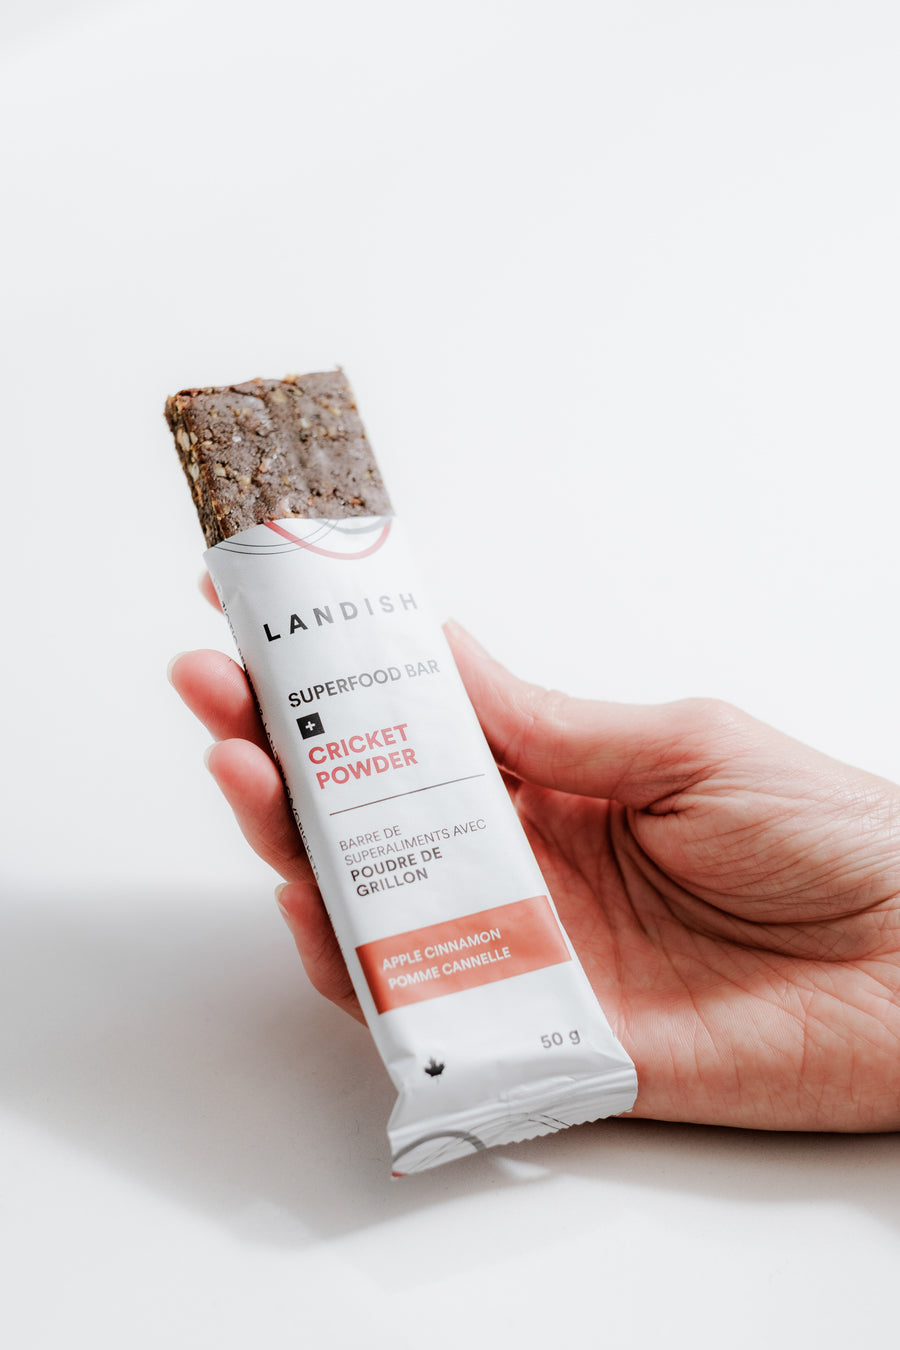 Apple Cinnamon Cricket Powder Protein Bar